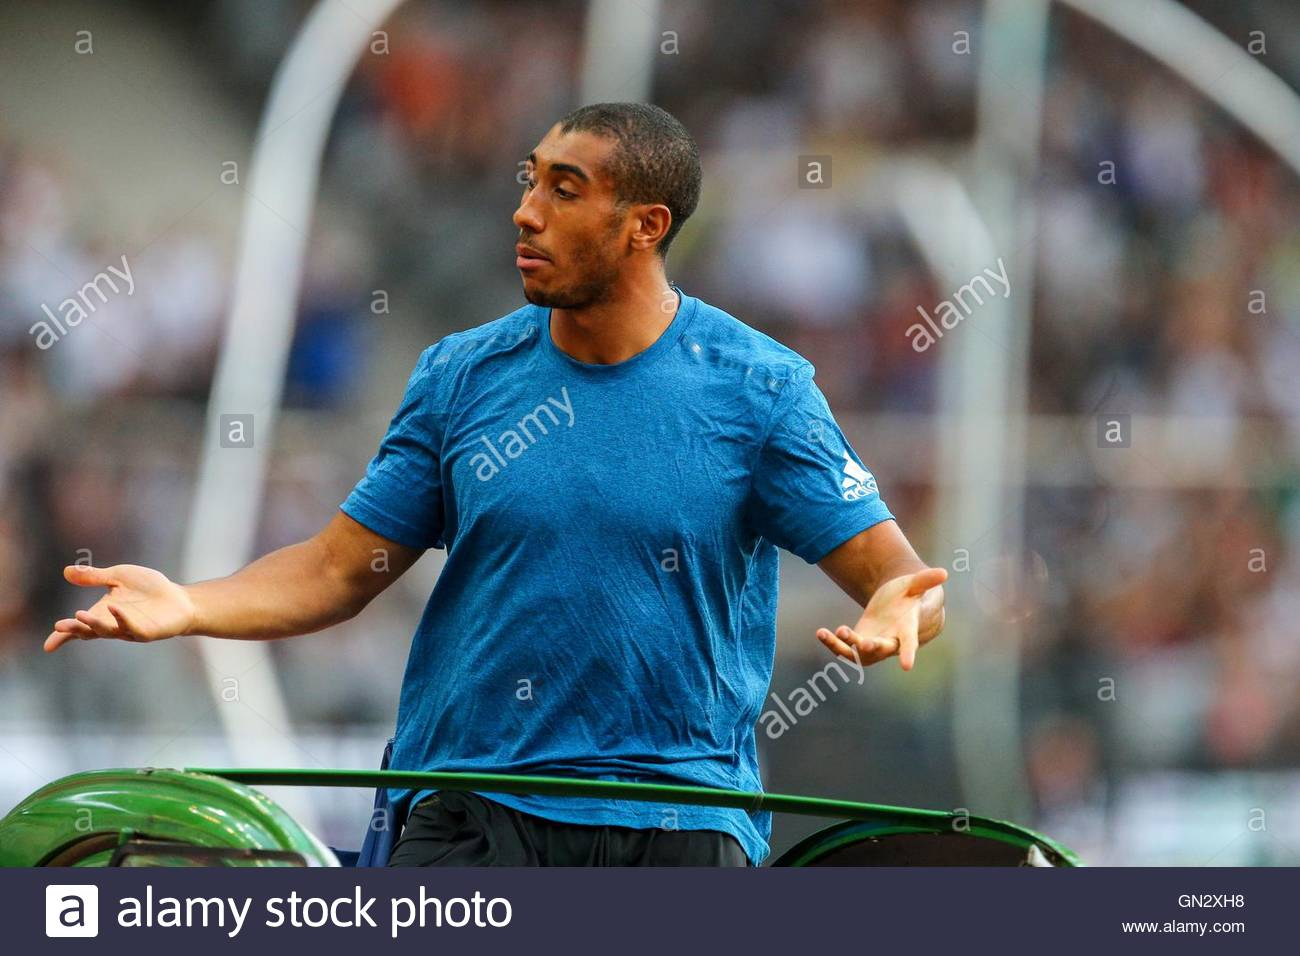 Saint Denis, France. 27th Aug, 2016. French sprinter Jimmy VIcaut parades in the Stade de France on August 27, 2016 - Stock Image